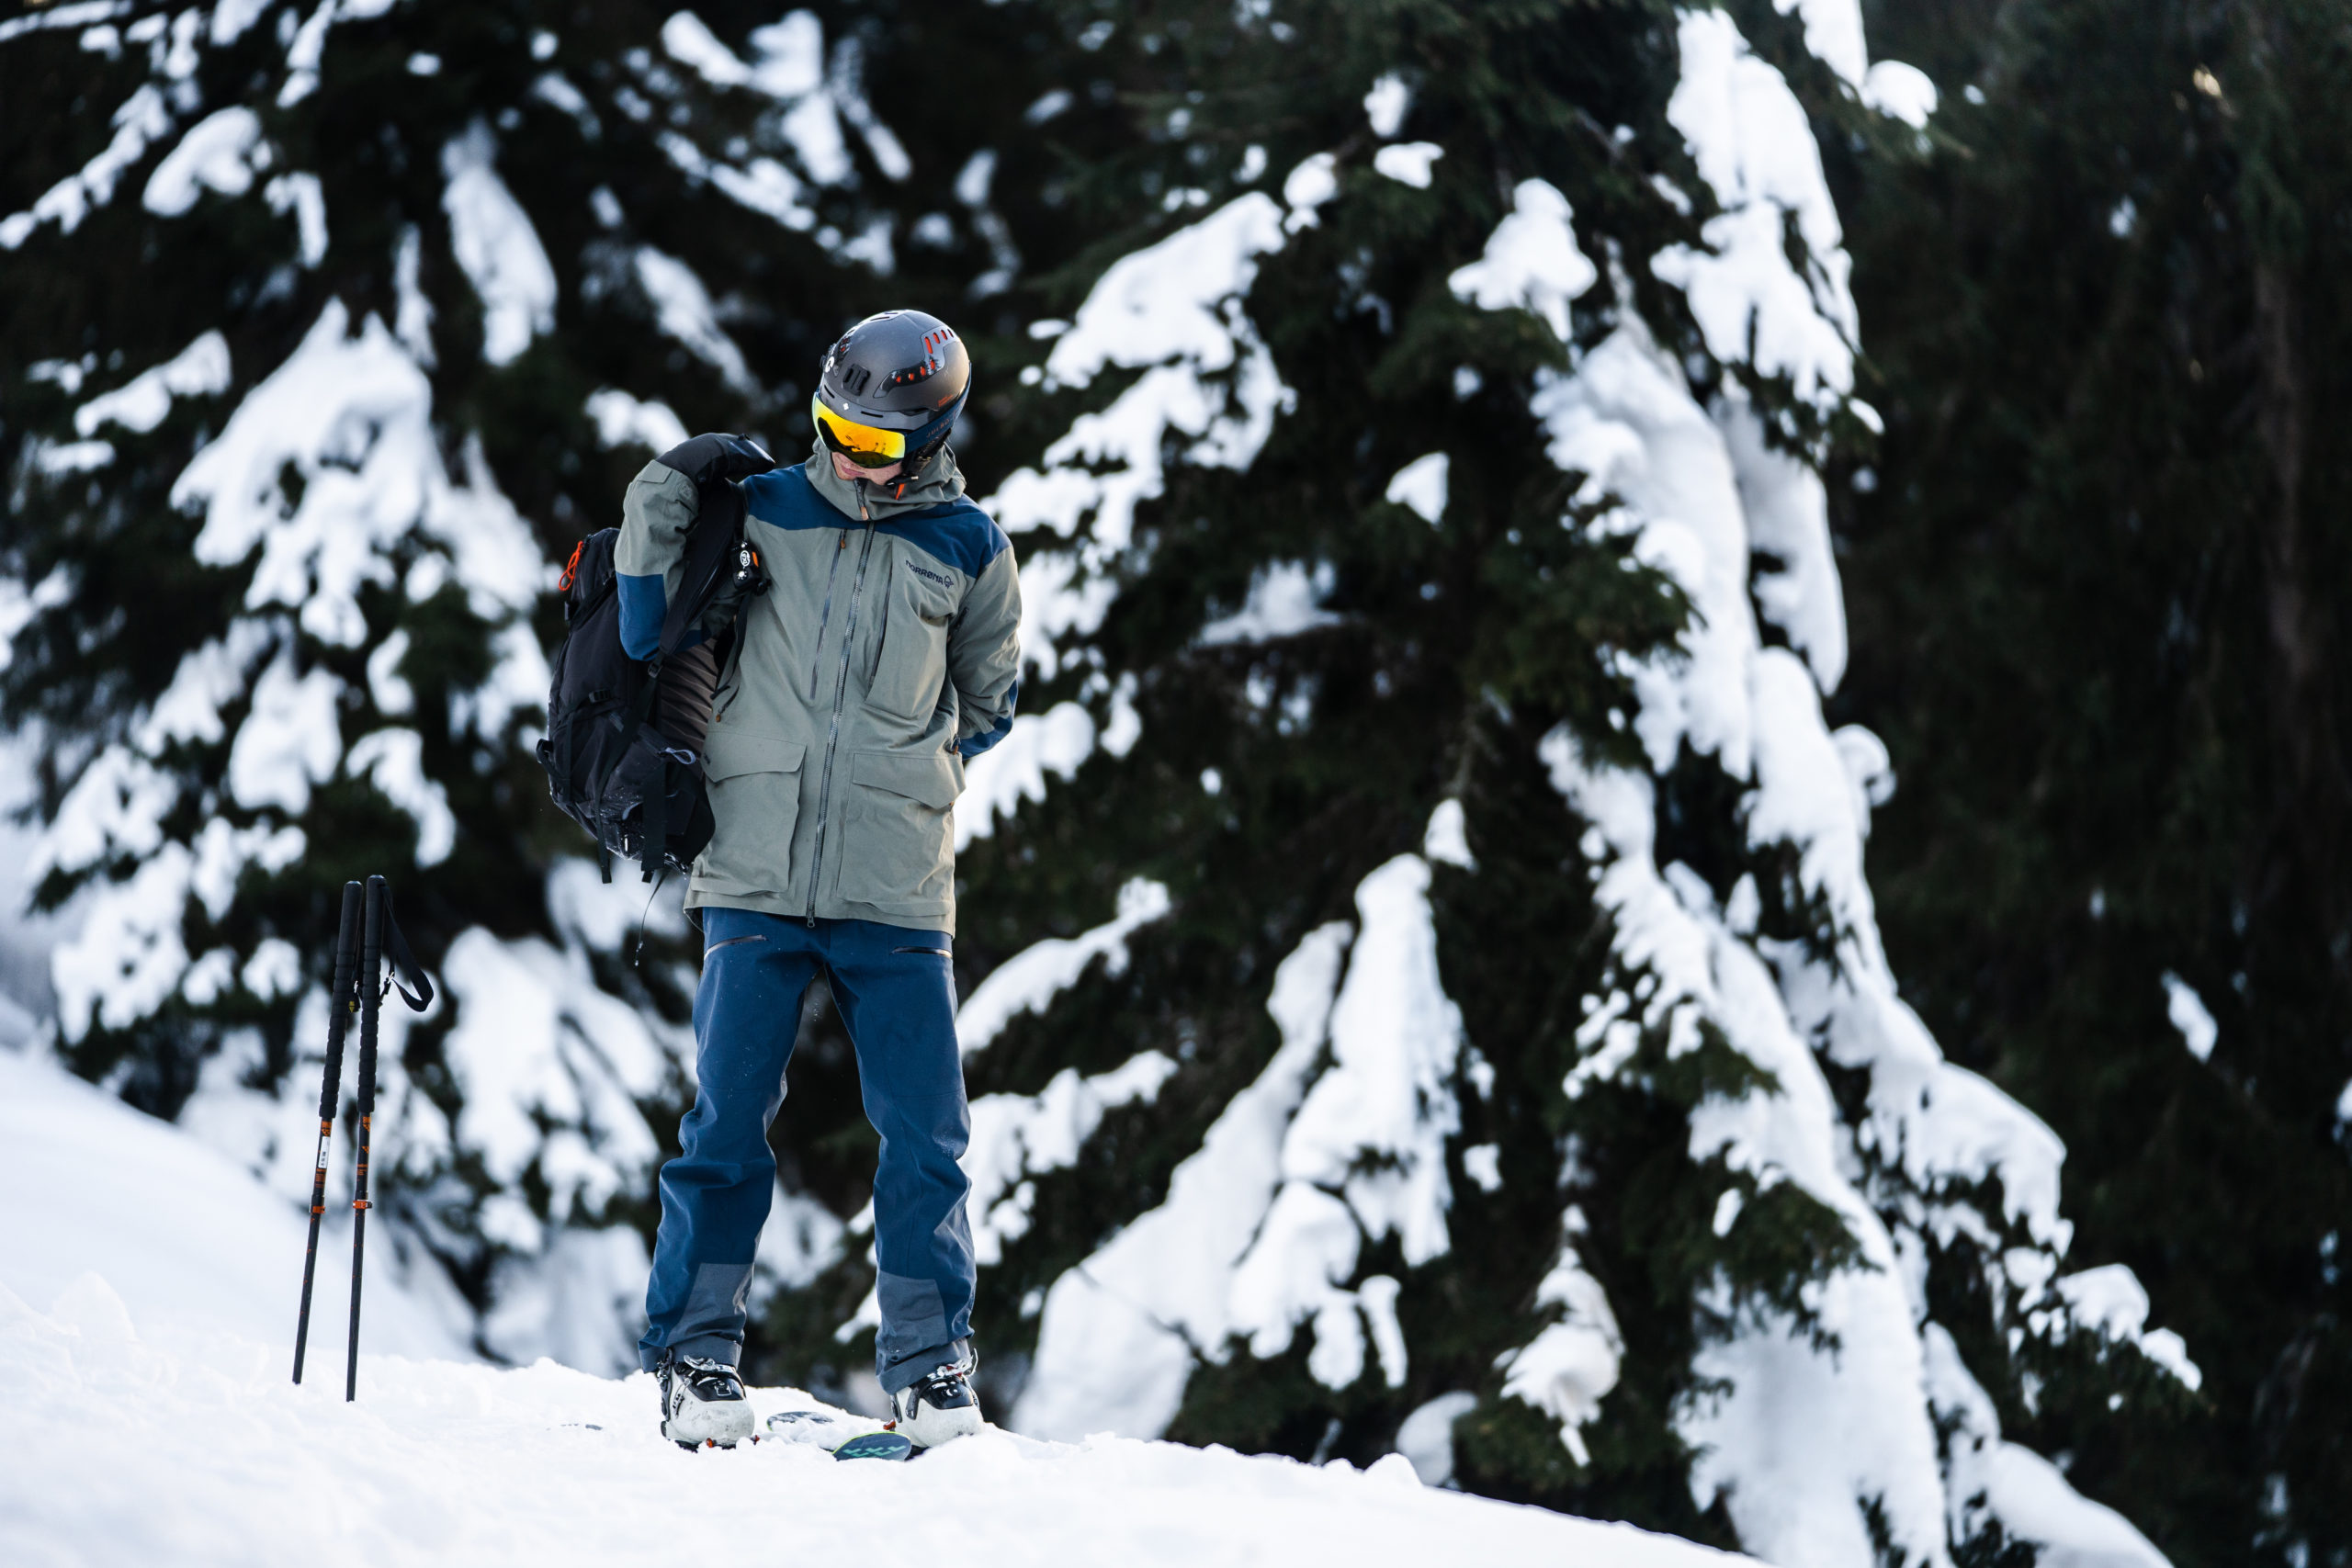 Nikolai Schirmer skiing in St Anton, Austria. 22.05.19 This right is worldwide and minimum of 3 years and thereafter until right is withdrawn by Photographer.